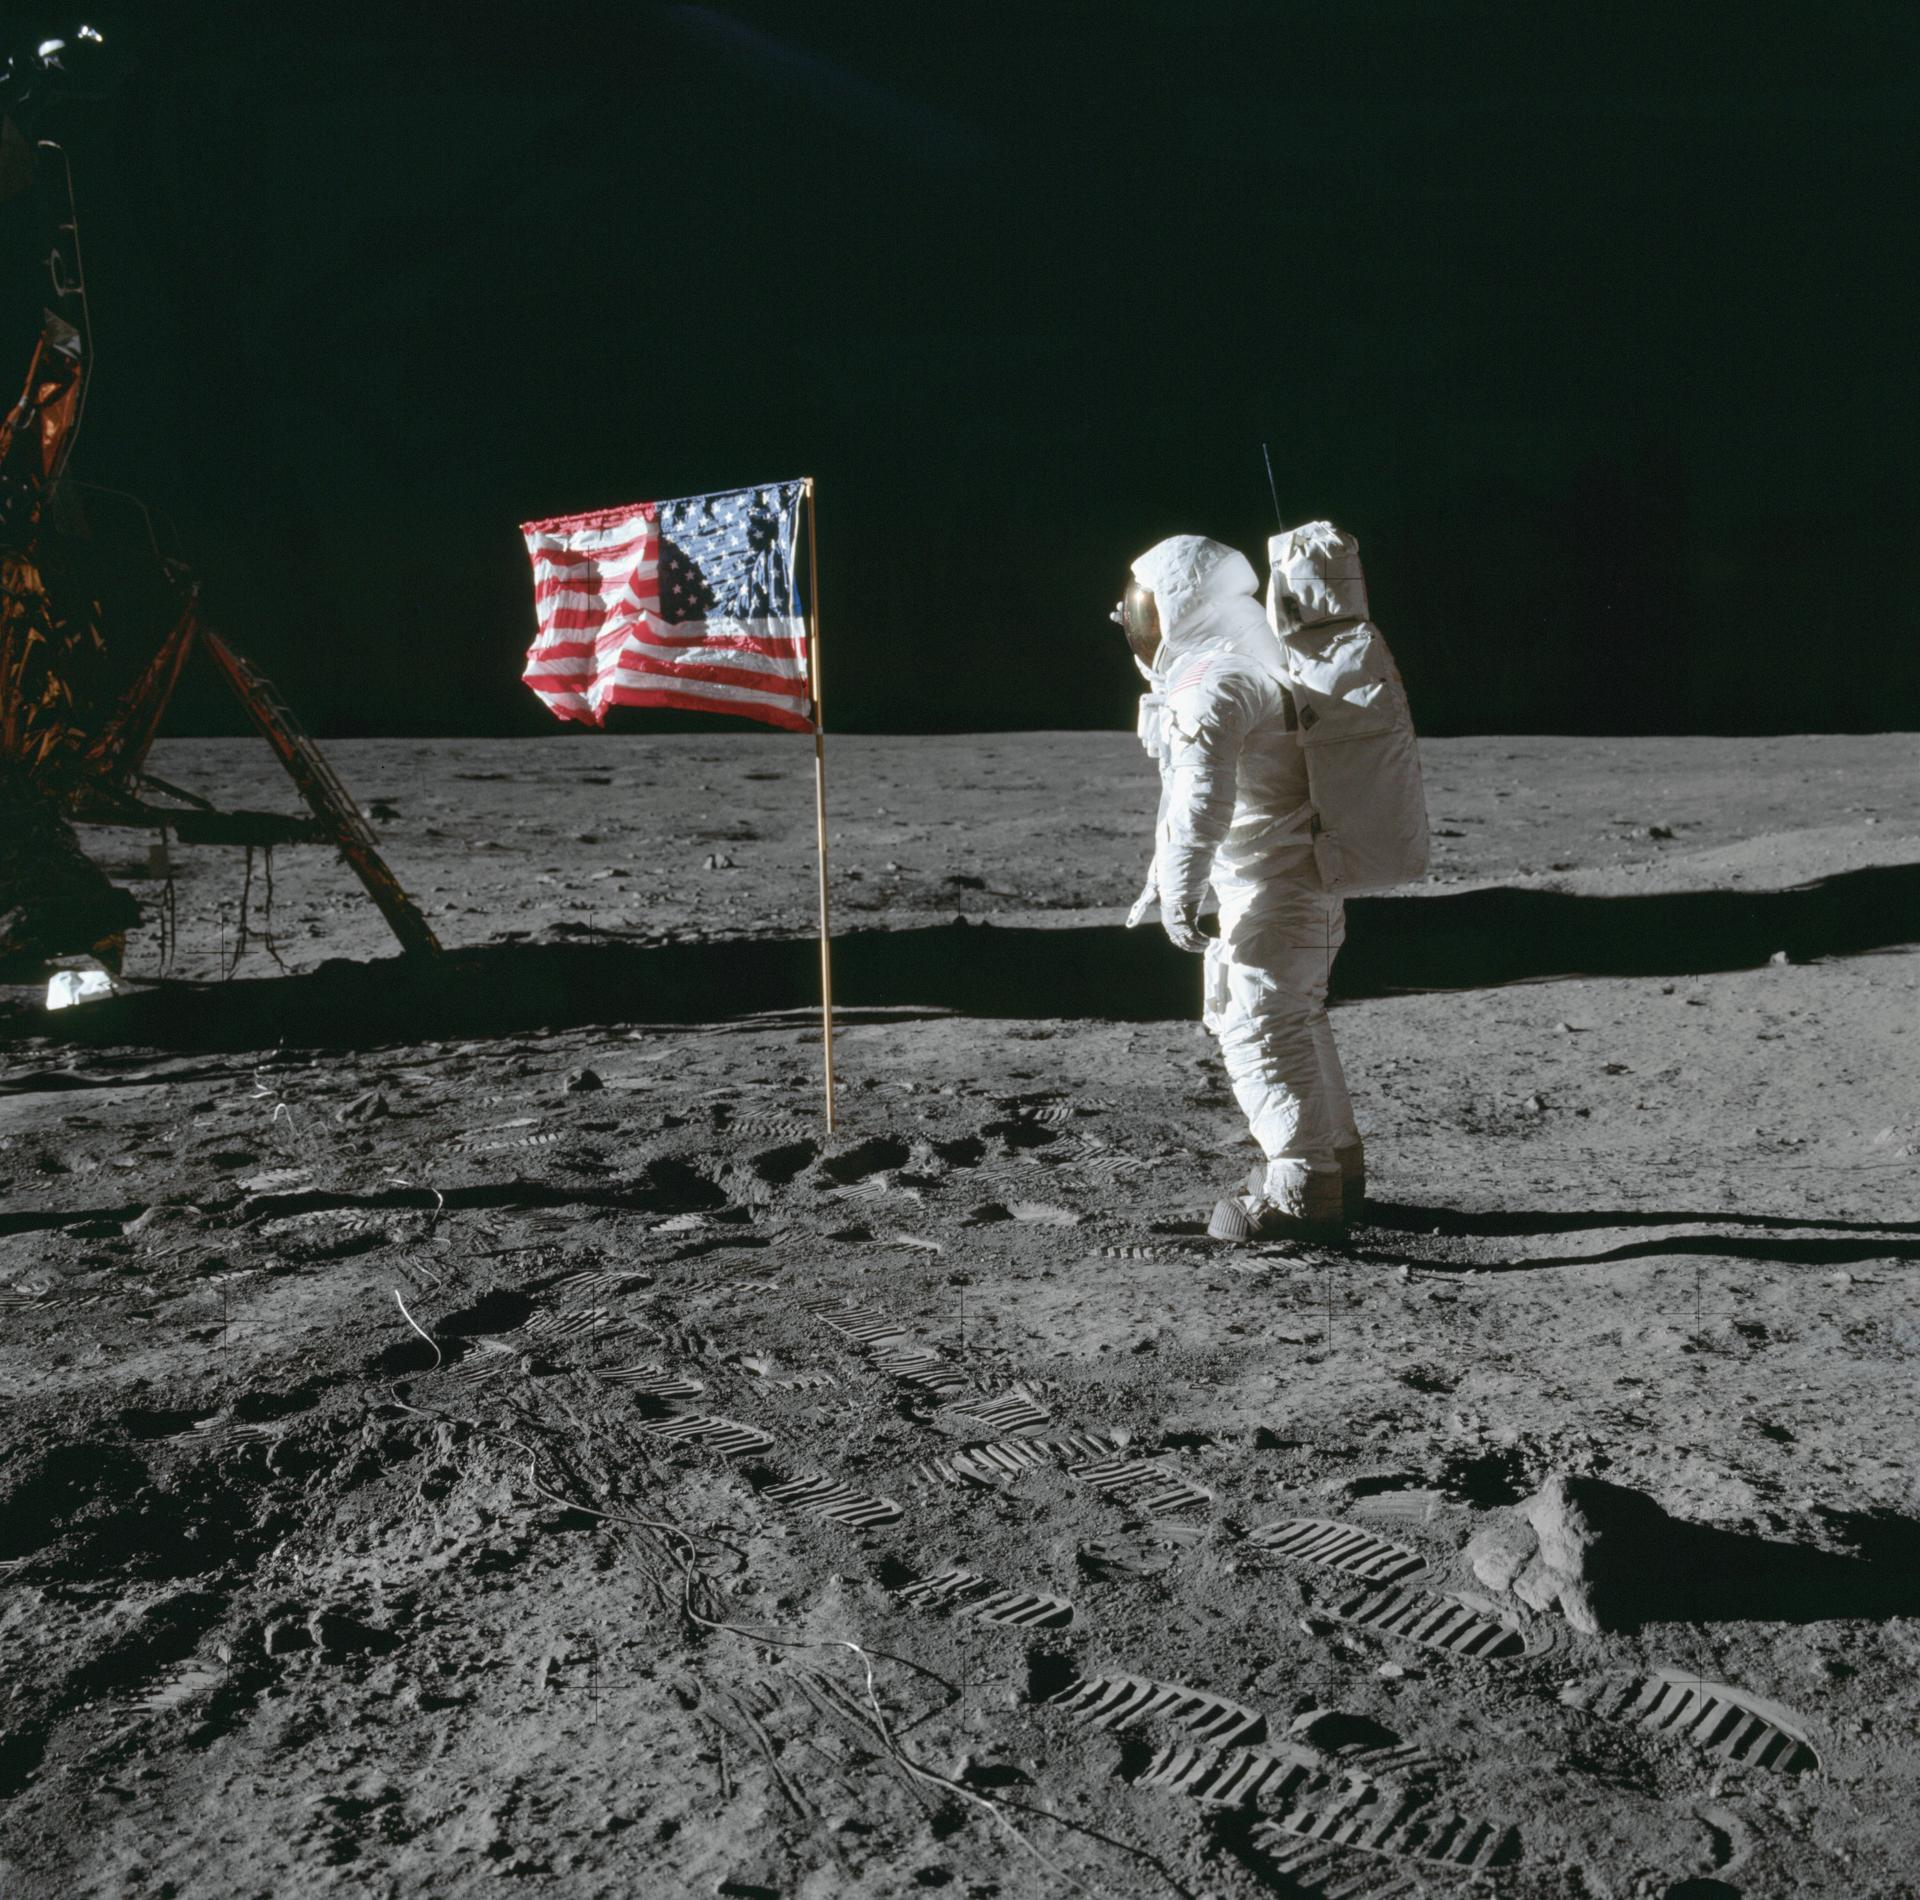 Astronaut Edwin E. Aldrin Jr., lunar module pilot of the first lunar landing mission, poses for a photograph beside the deployed United States flag during Apollo 11 extravehicular activity (EVA) on the lunar surface. Image courtesy of NASA